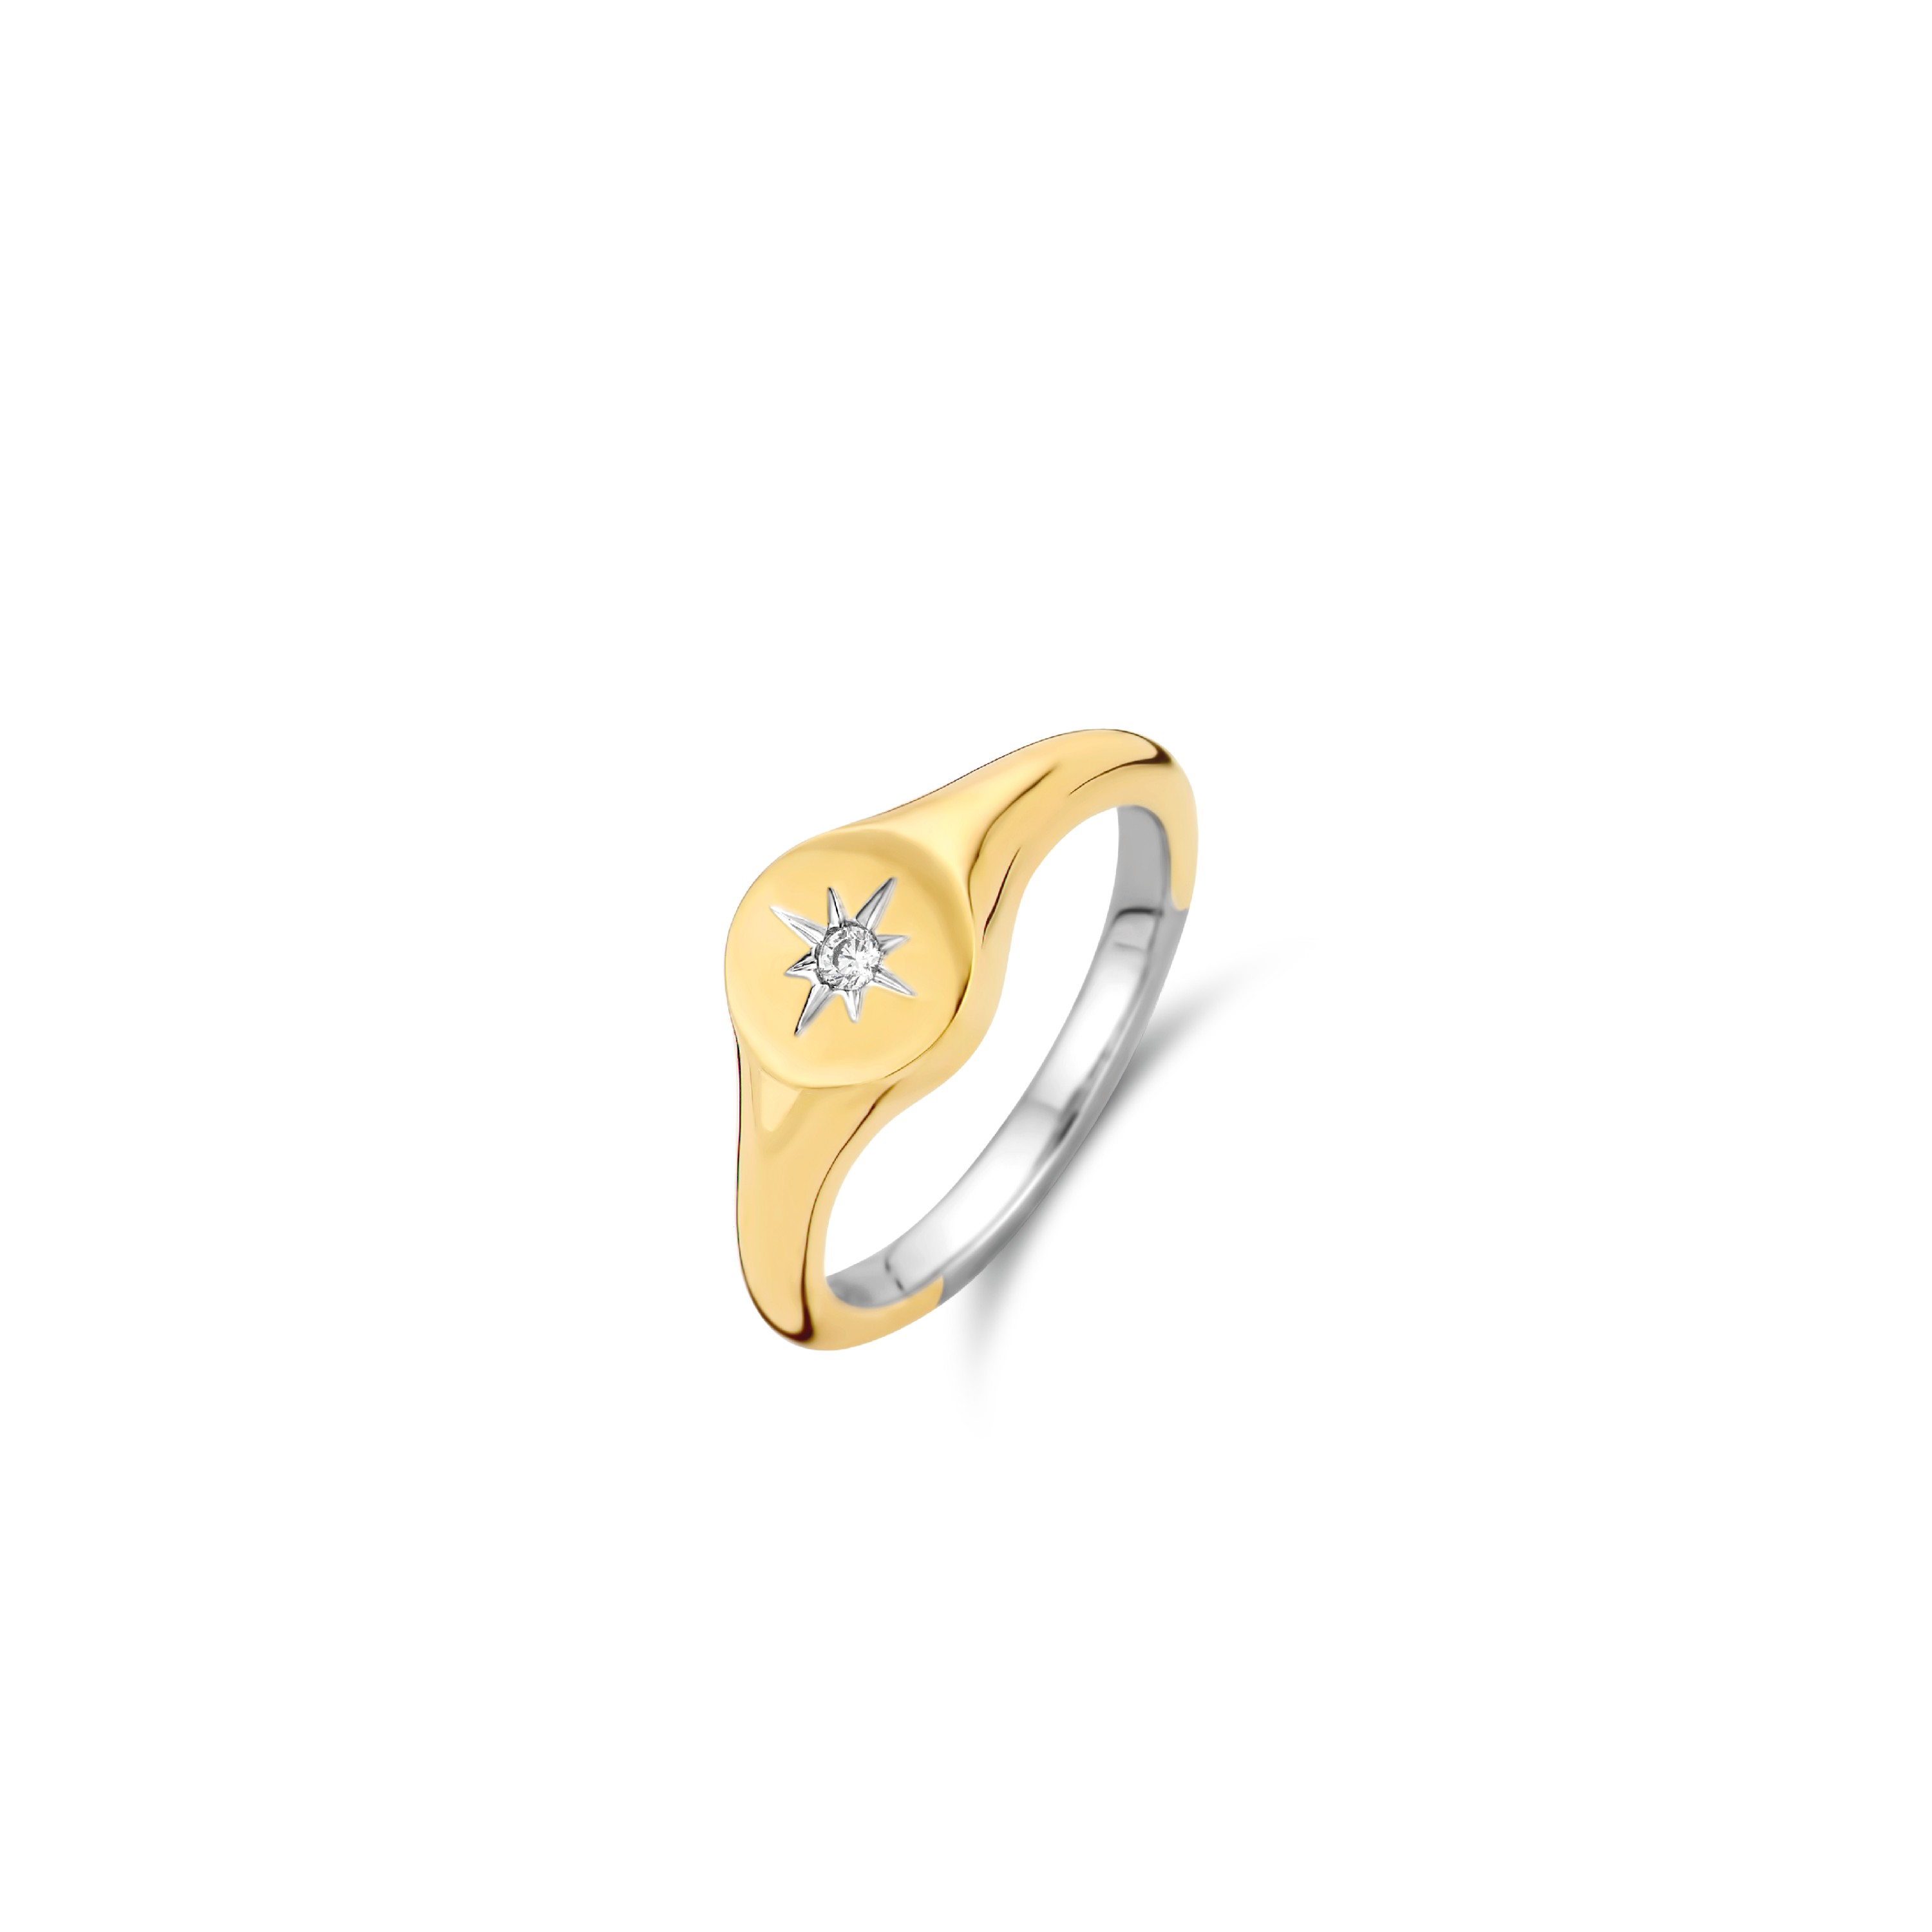 TI SENTO Milano Ring 12199ZY Zilver gold plated Maat 58